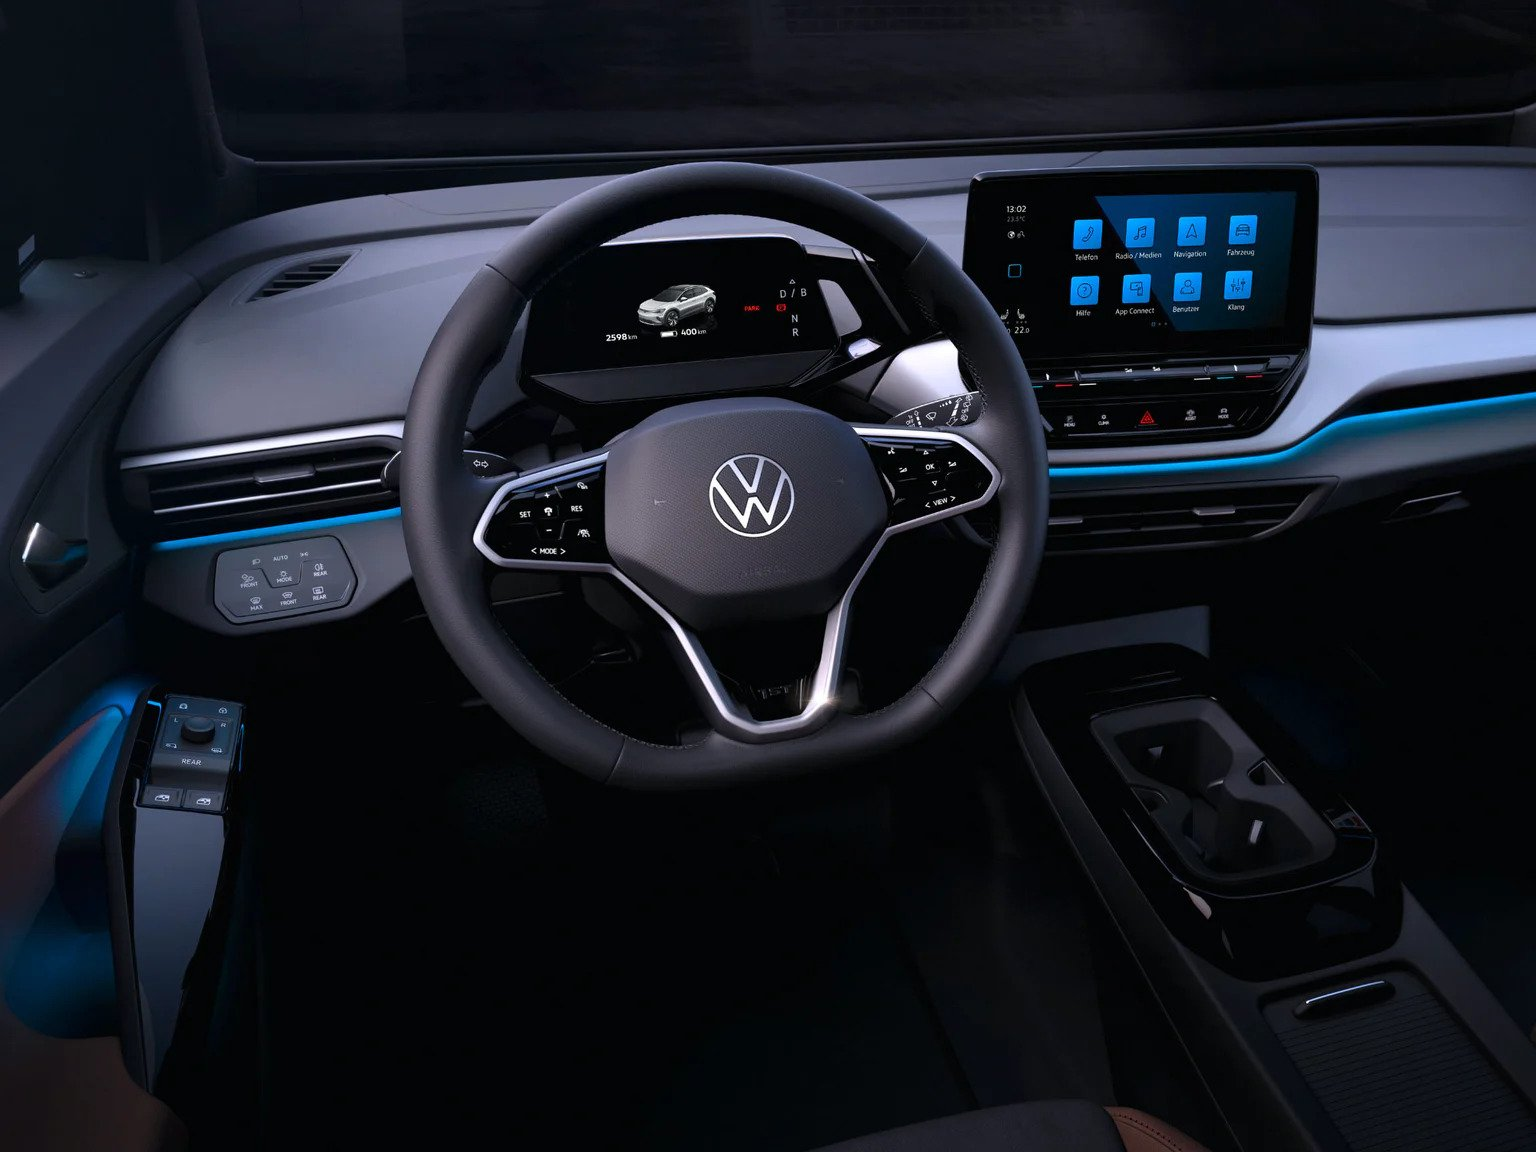 2022 VW ID.4 Interior Pictures